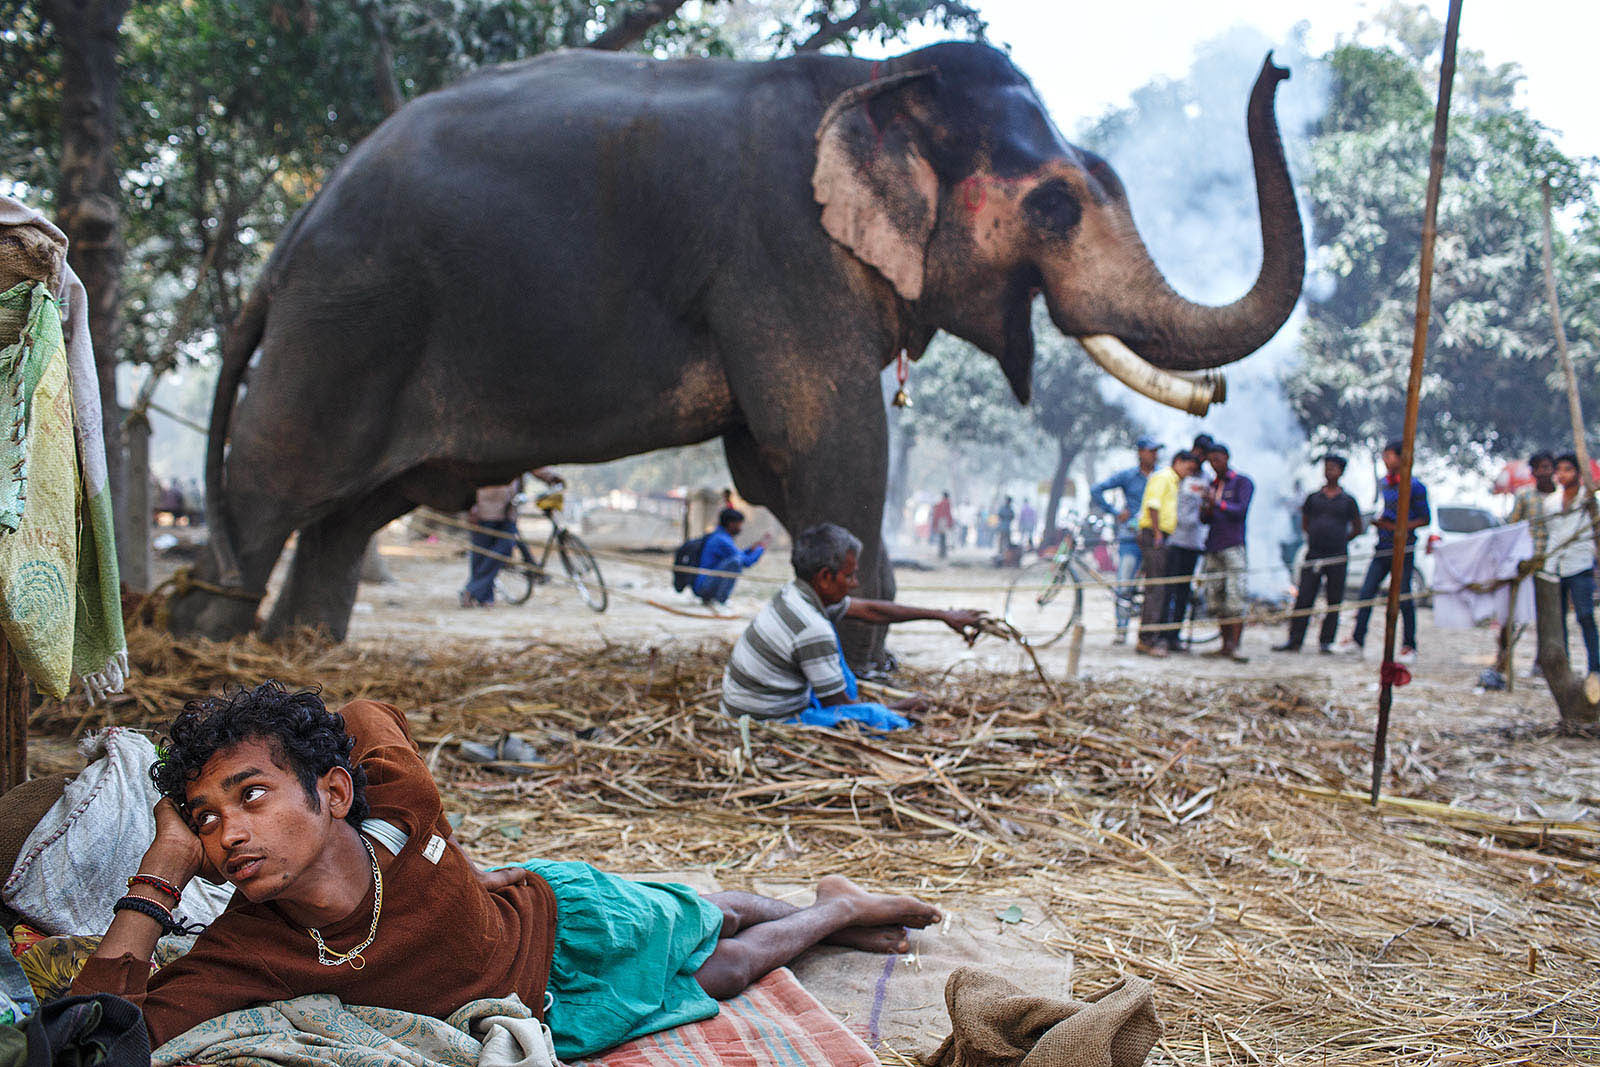 india_bihar_sonpur_sonepur_mela_fair_rural_animal_elephant-1600x1067.jpg